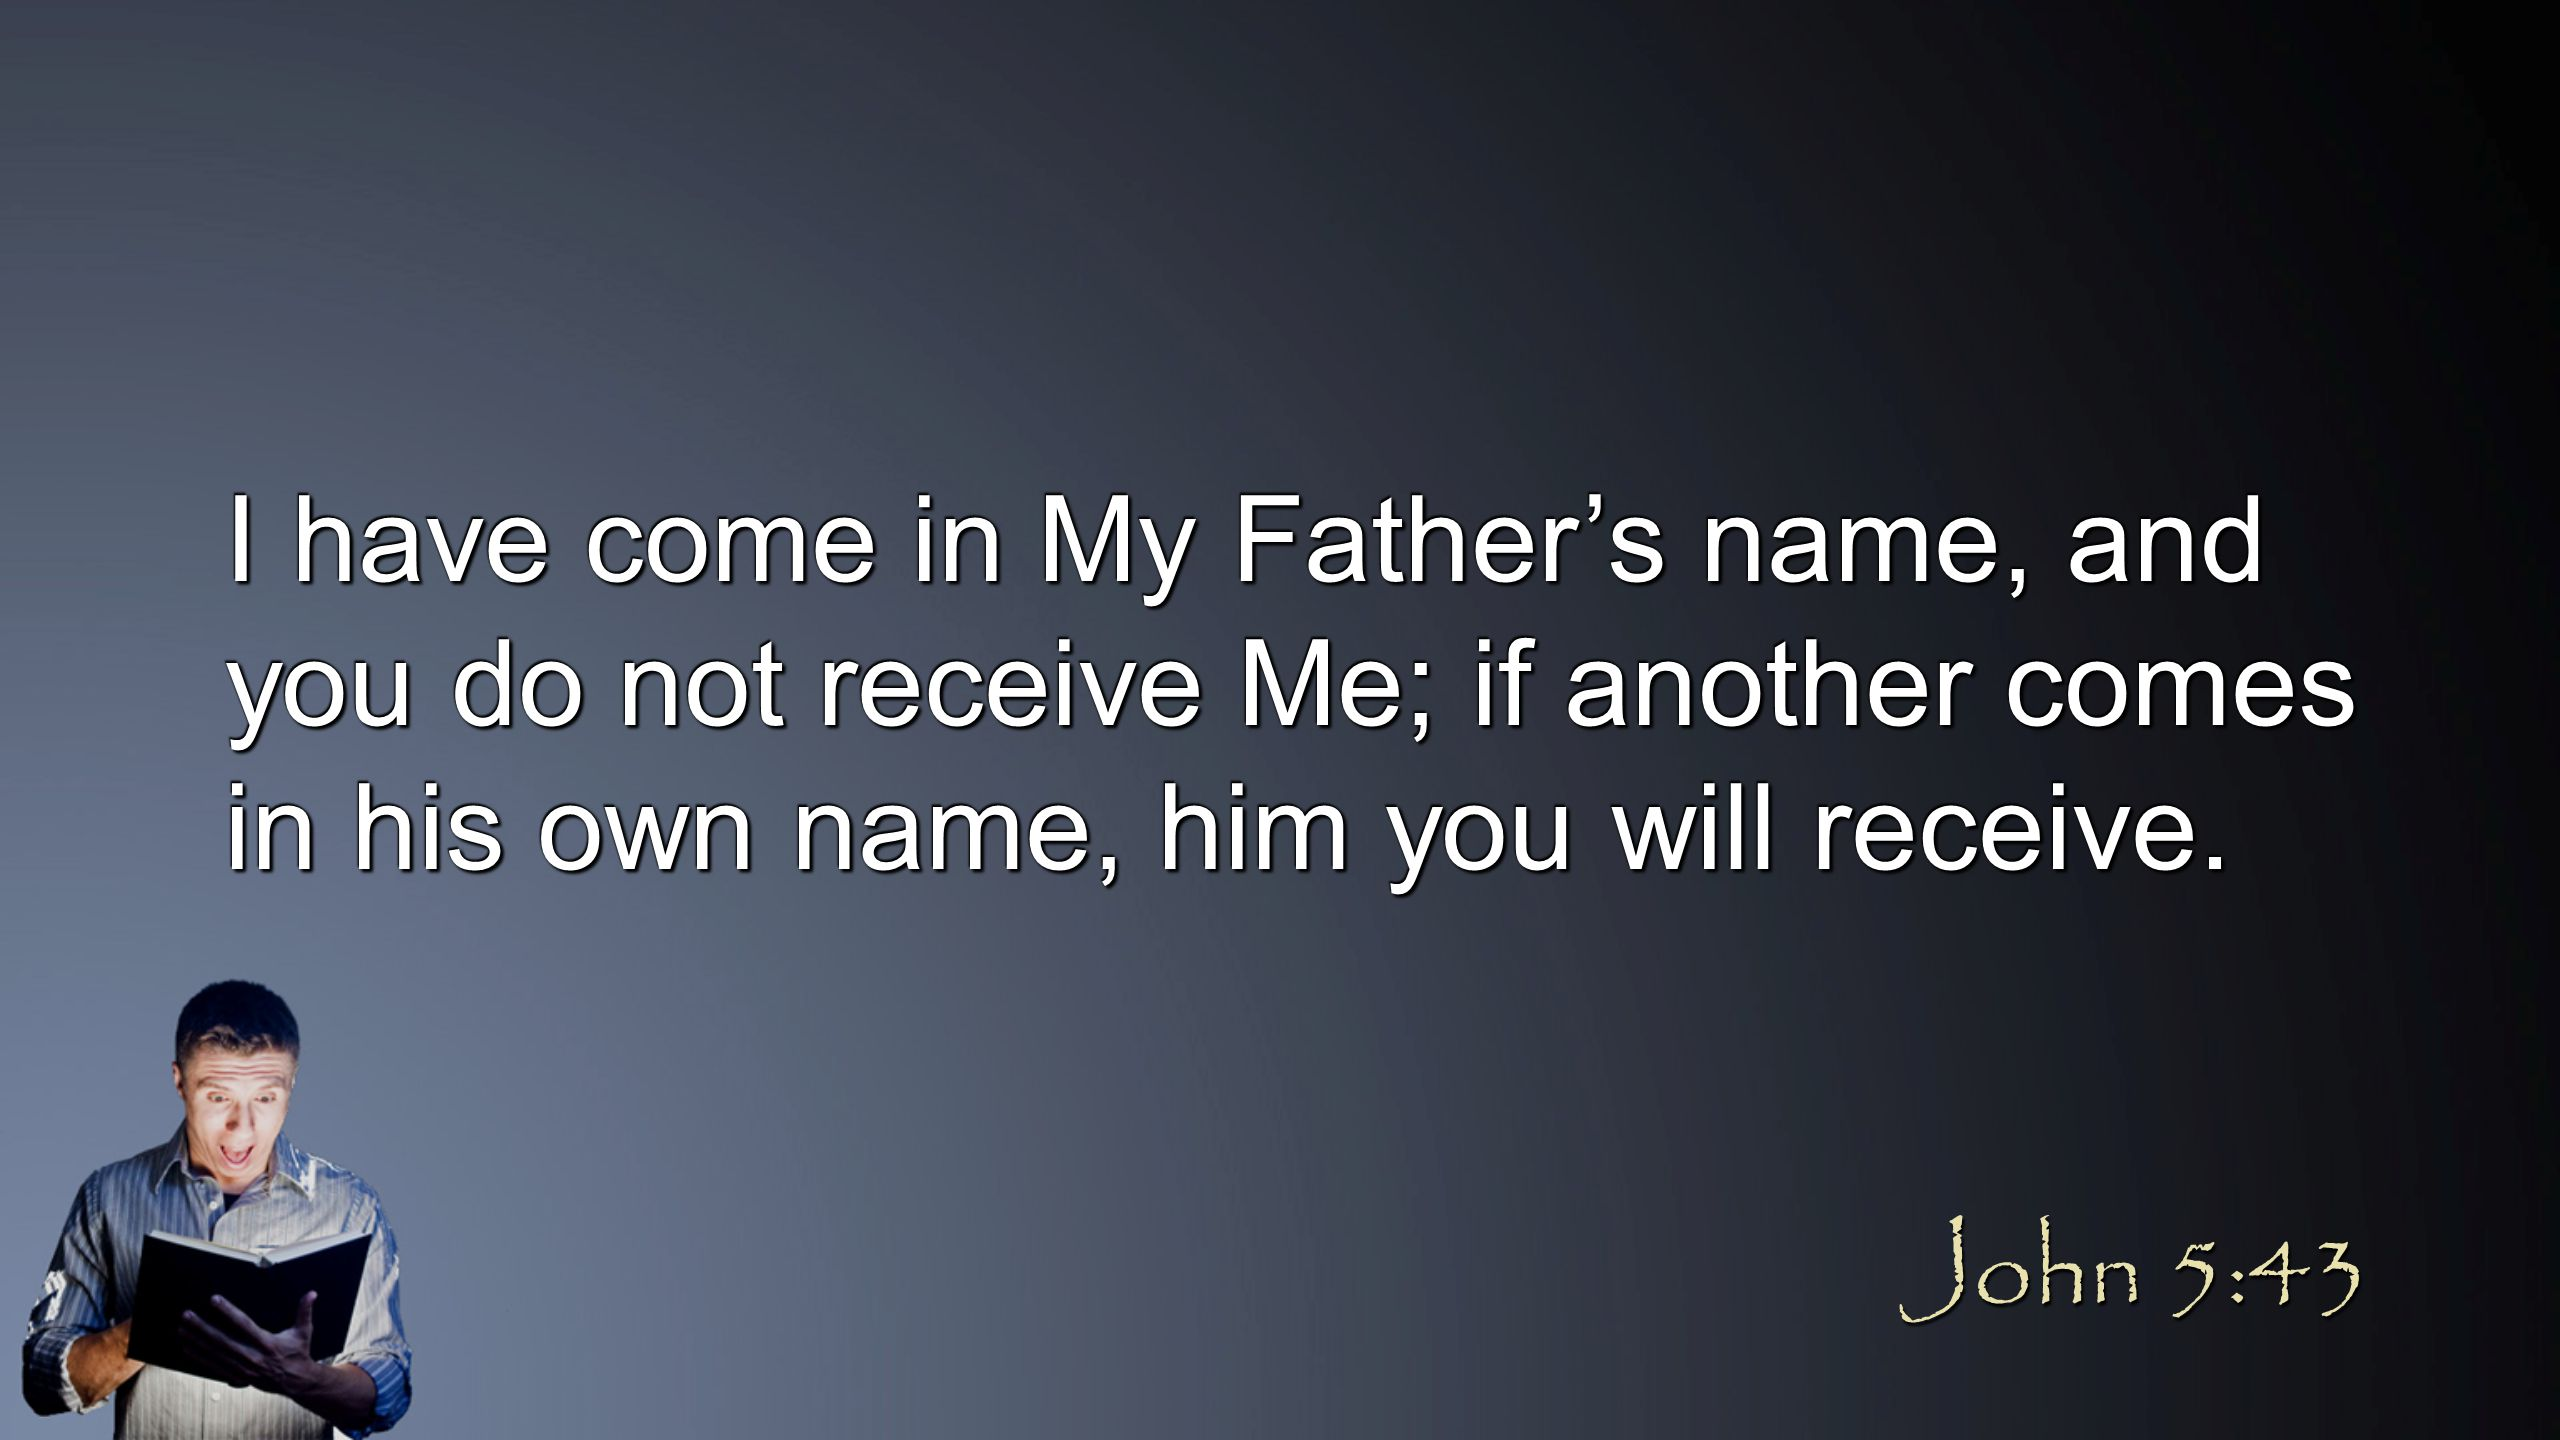 I have come in My Father's name, and you do not receive Me; if another comes in his own name, him you will receive. John 5:43